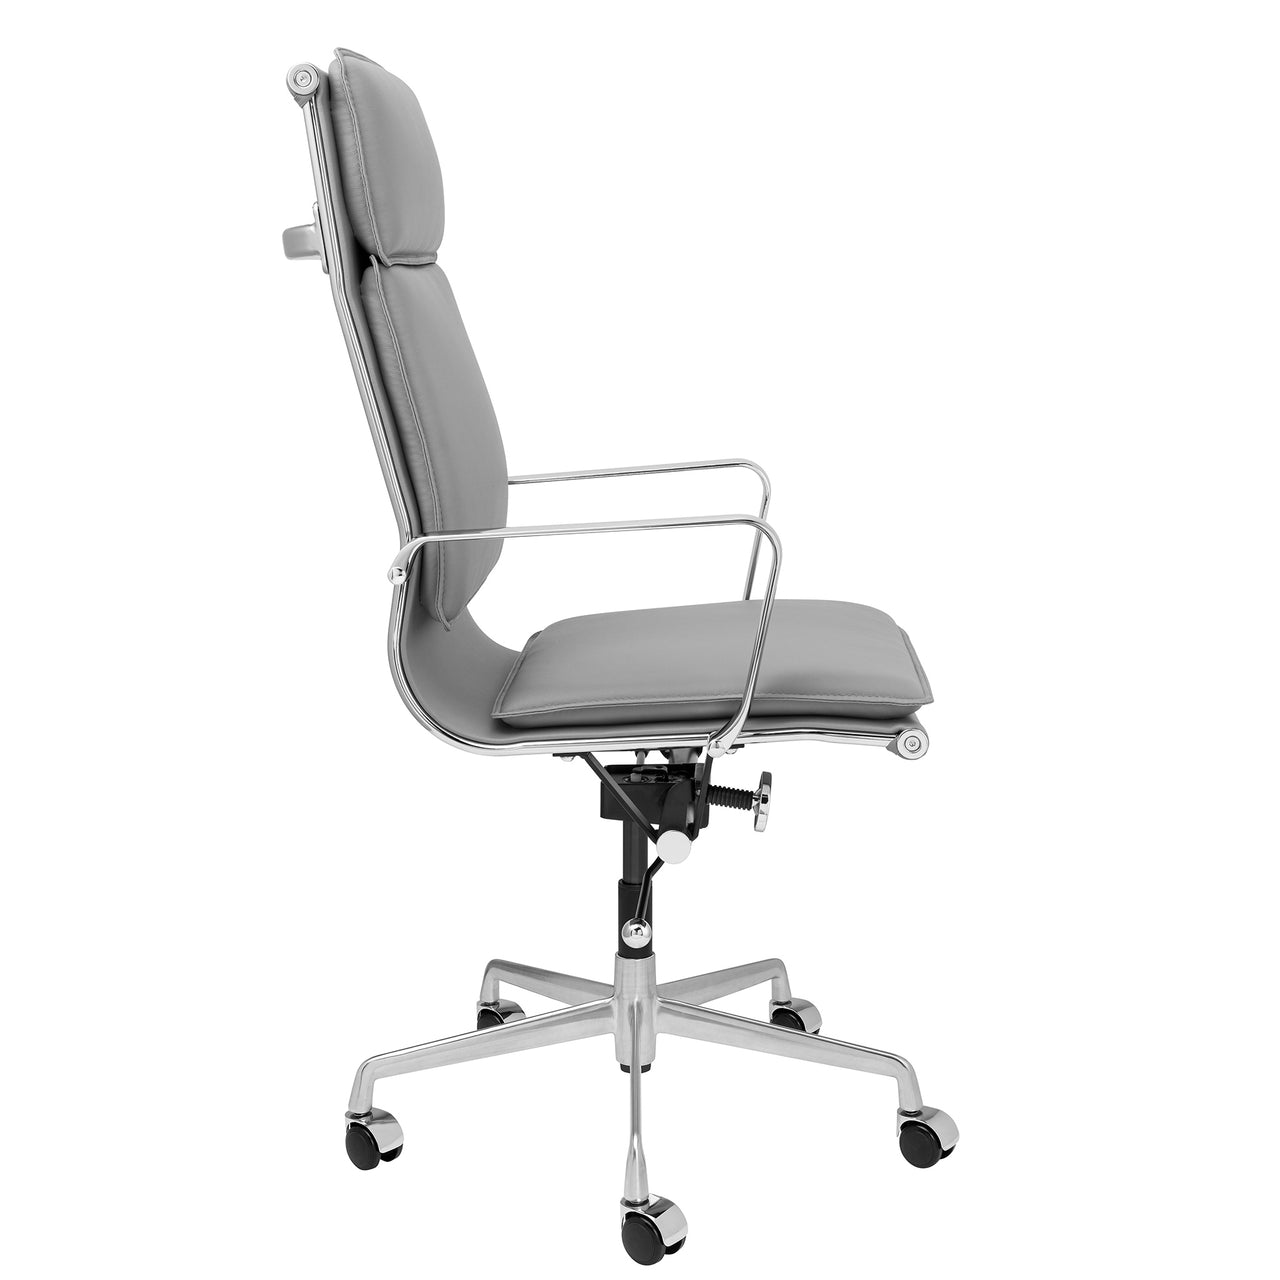 Lexi Tall Back Soft Pad Office Chair (Grey)